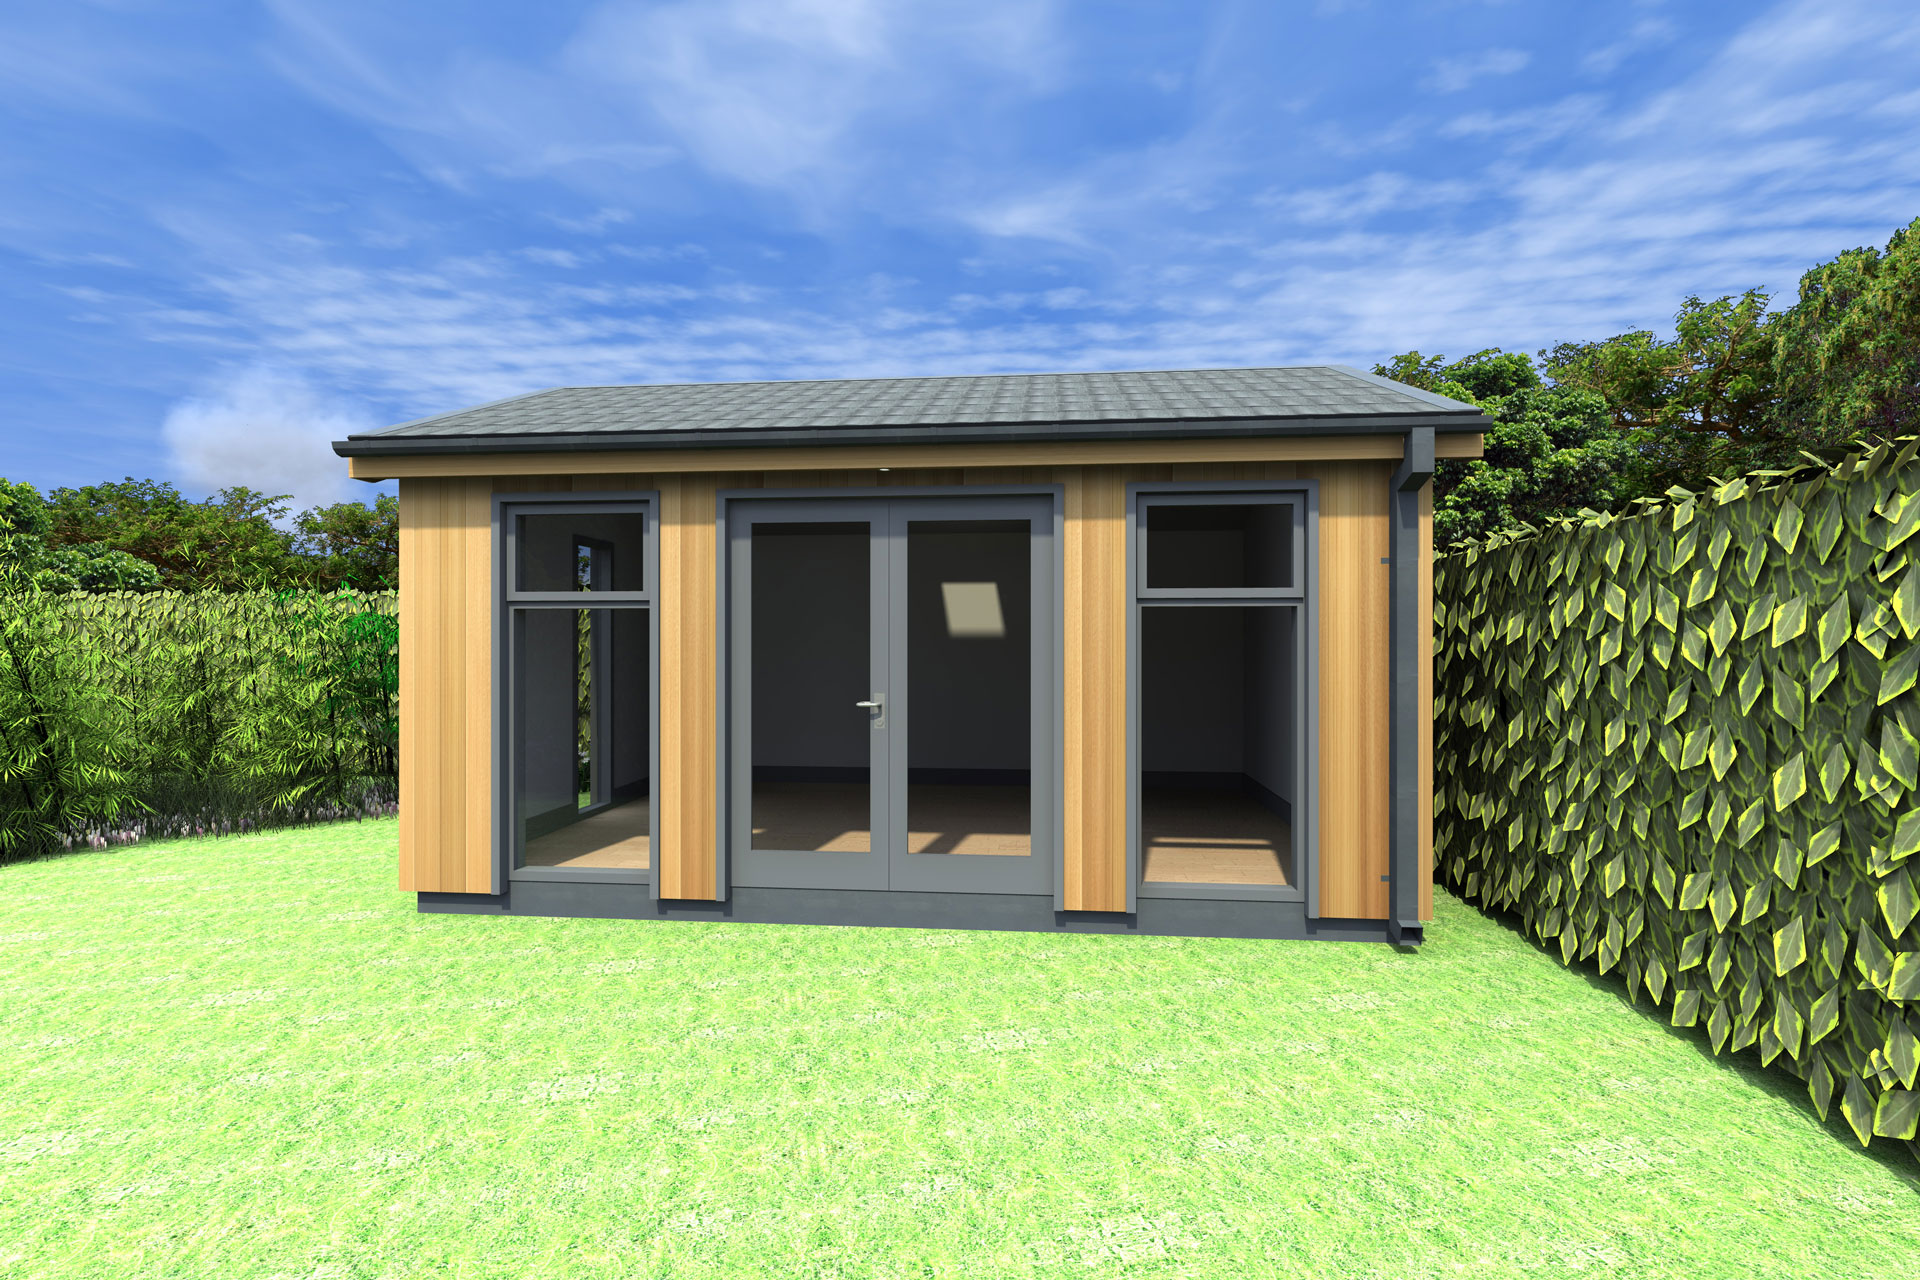 Garden office gallery photos pictures plans design for Garden office design